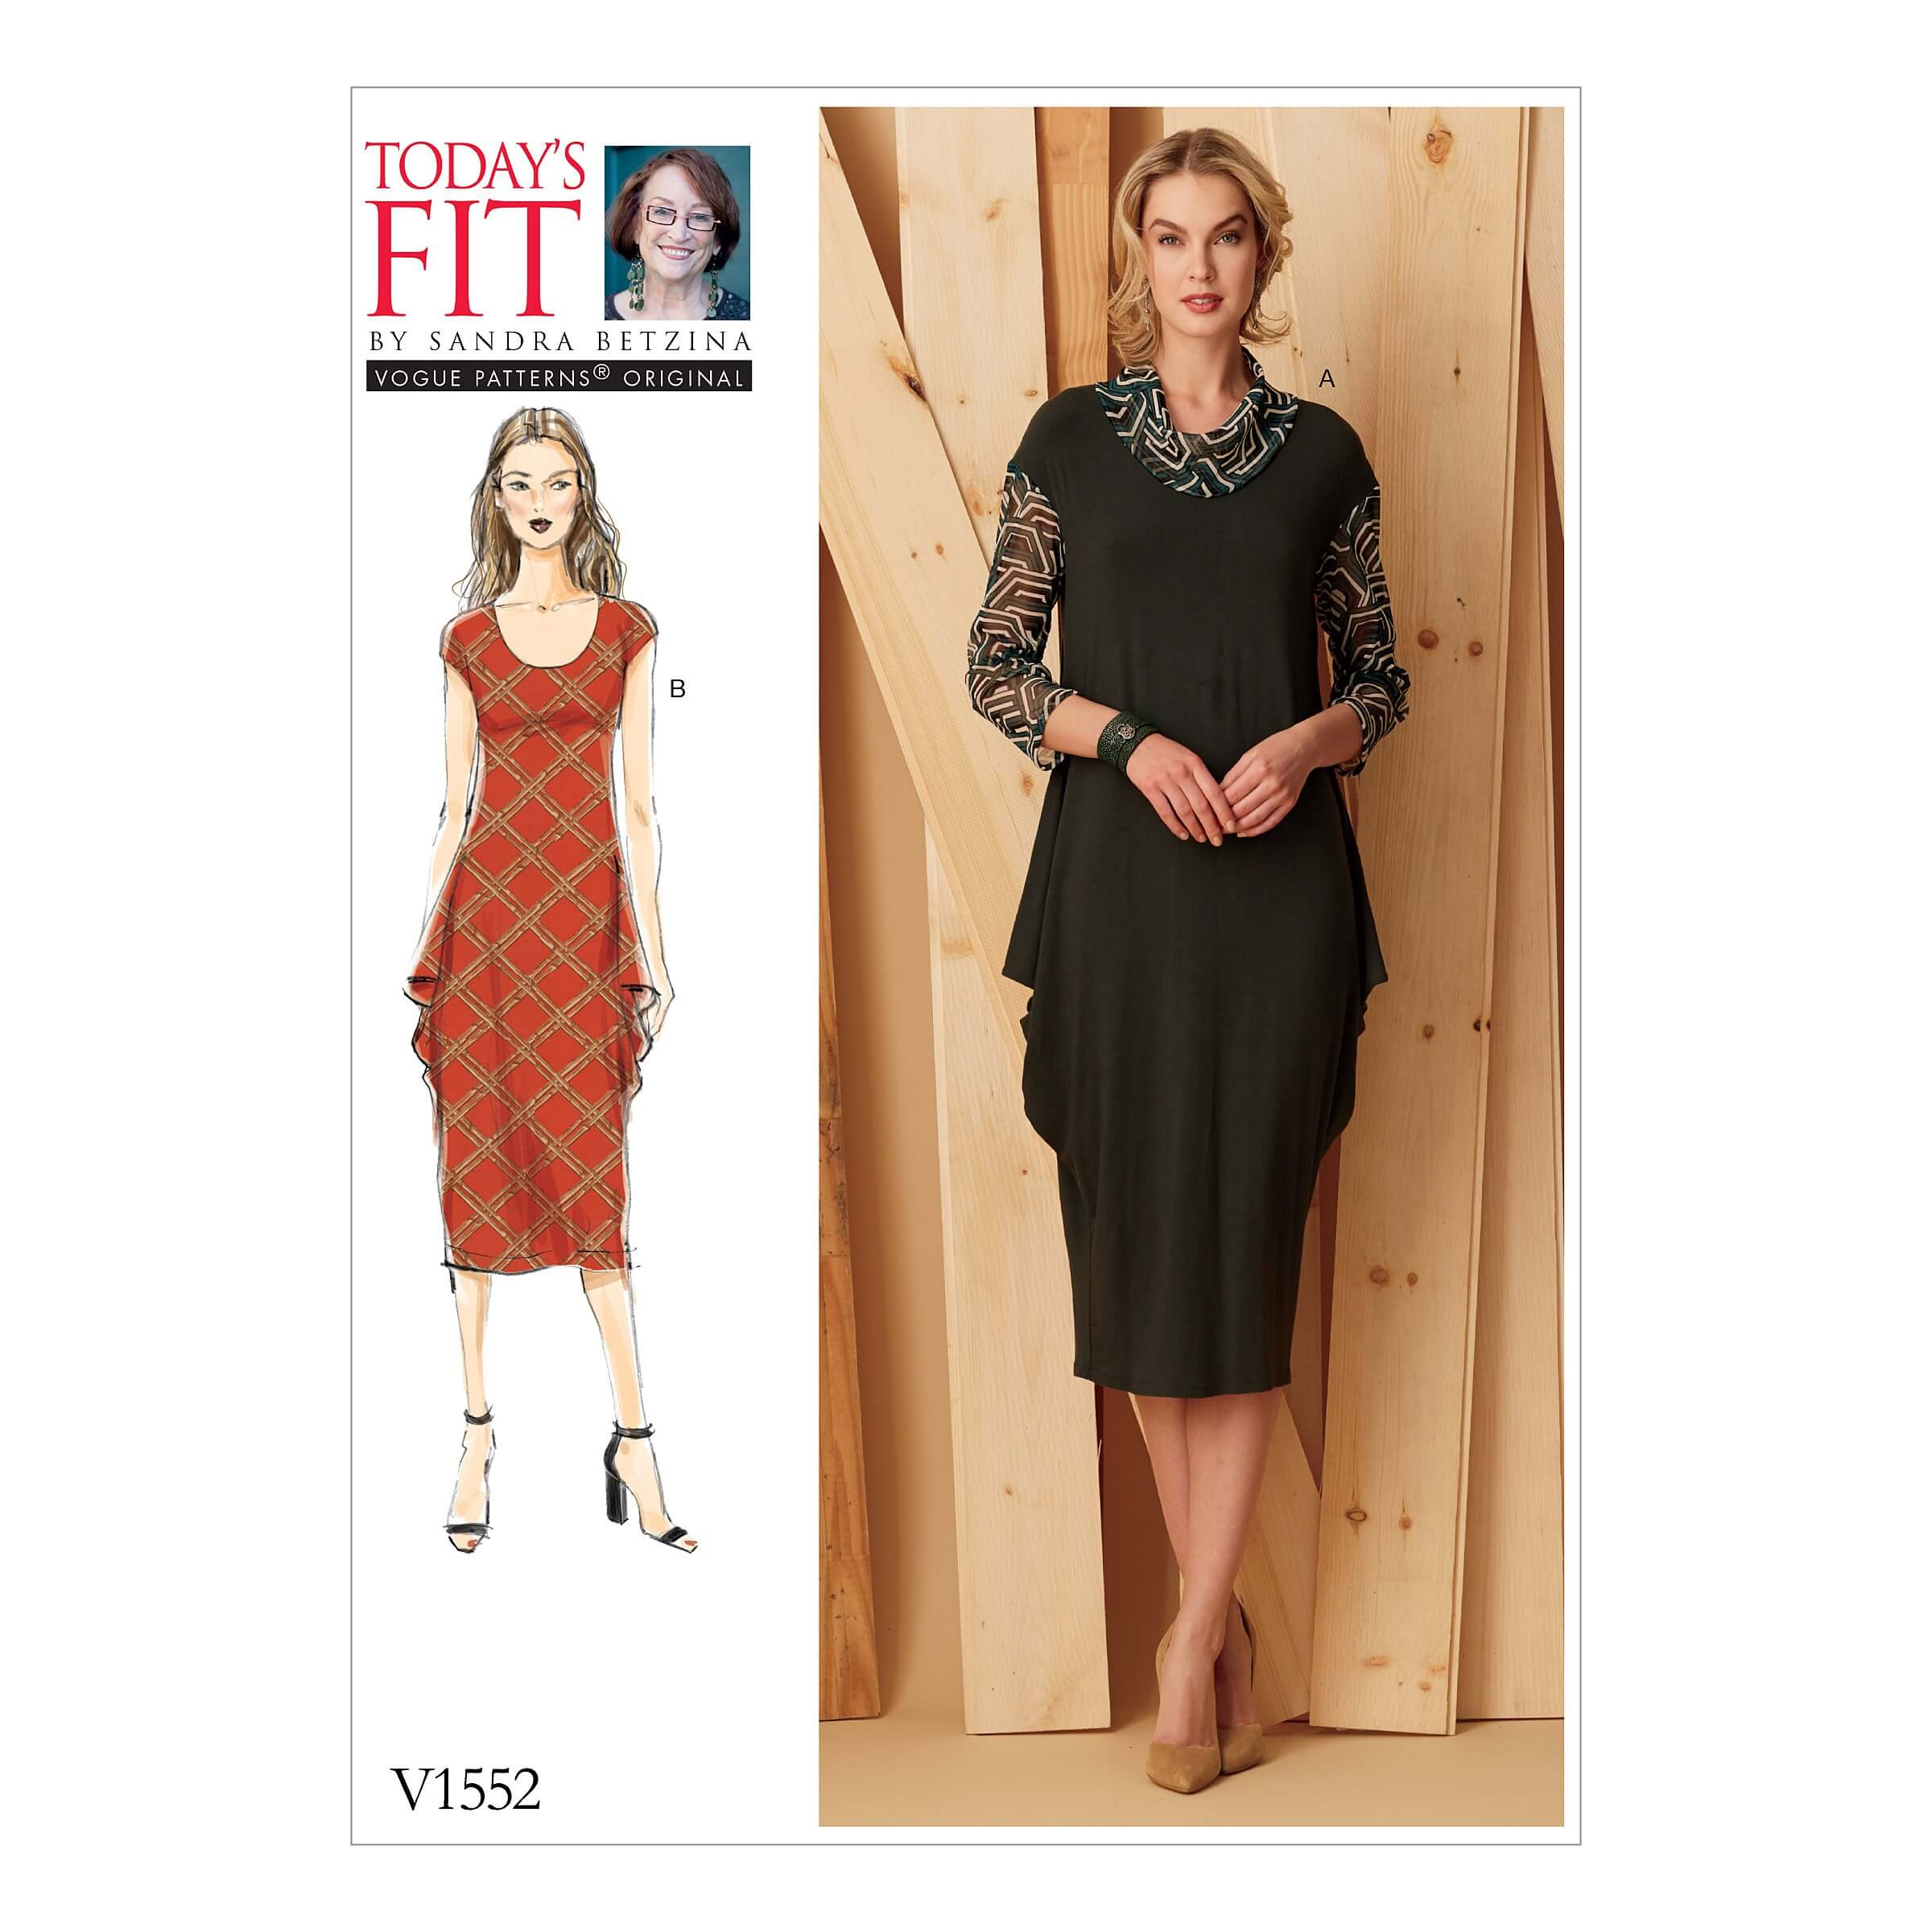 Vogue Sewing Pattern V1552 Women's Knit Dress with Draped Side Detail